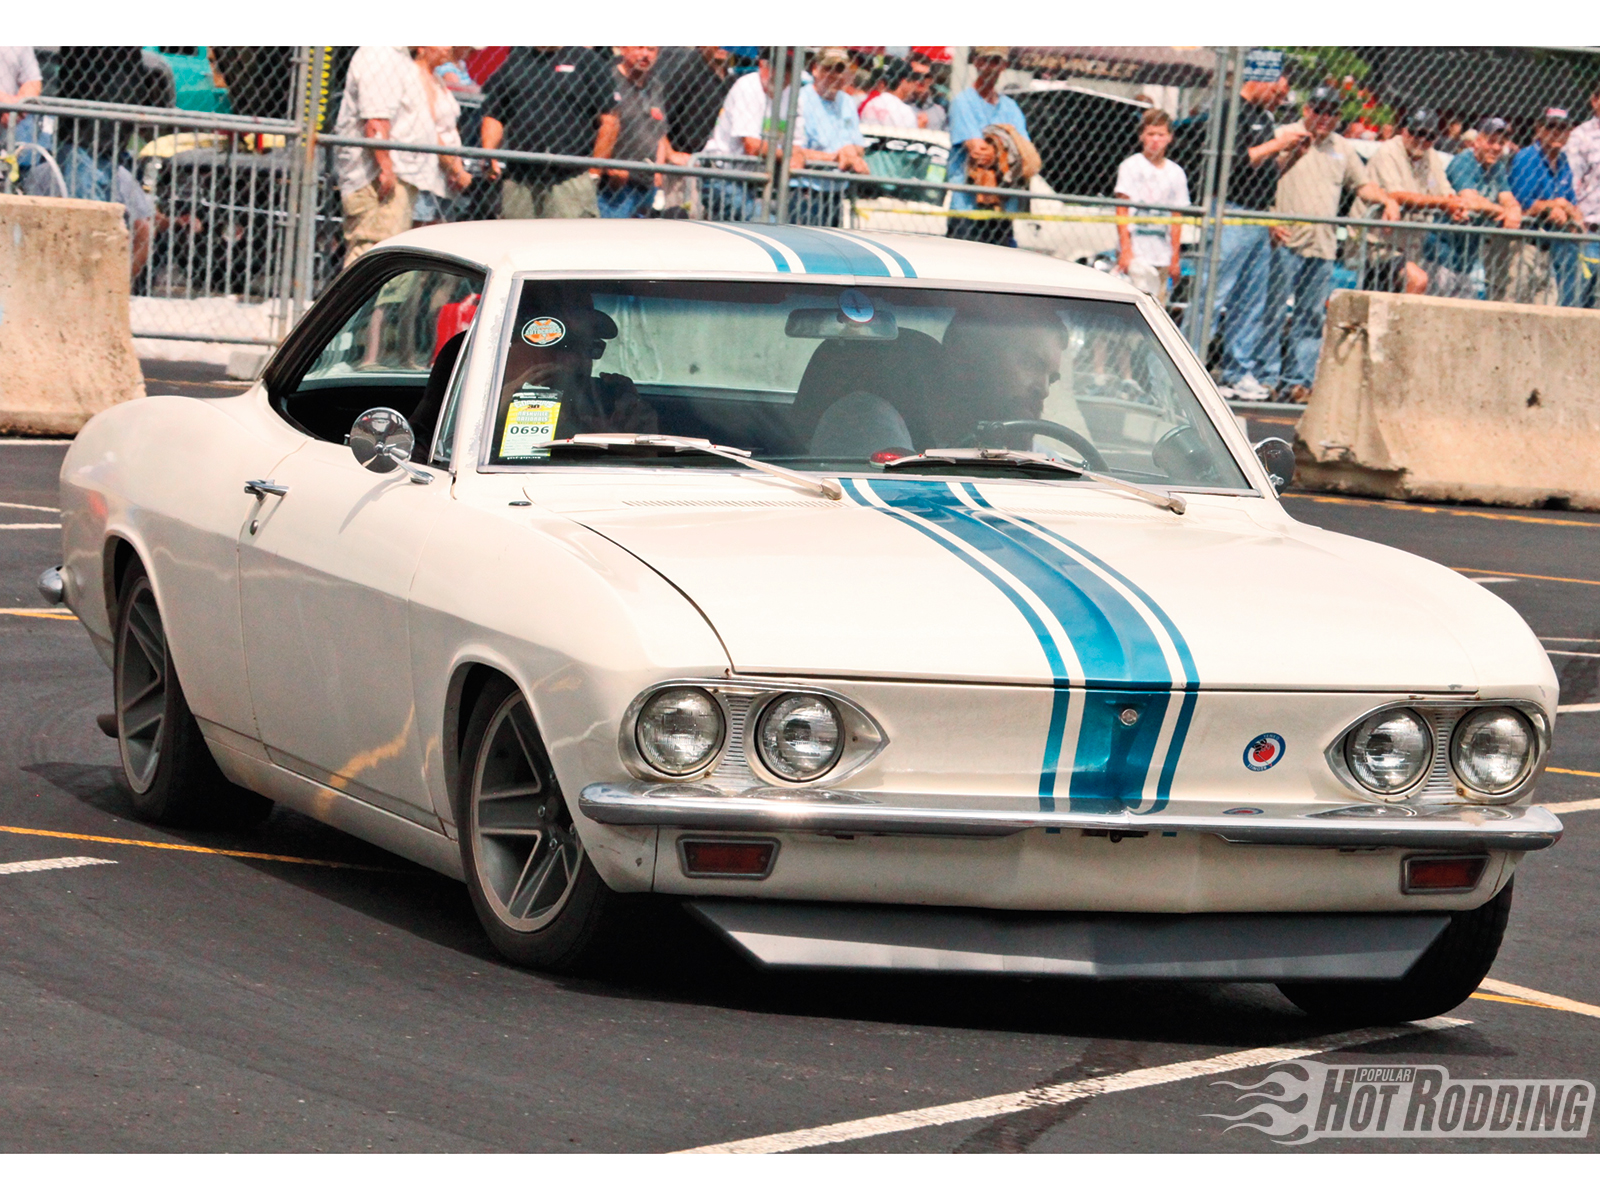 In an alternate universe, Ralph Nader is arrested as a serial killer, the Corvair never dies, the Camaro never gets penned, and instead of reading Camaro magazines, we now read Corvair Performers magazine, with Kevin Poe's 1965 Corvair on the cover. This one sports a 164ci air-cooled boxer with four 1 BBL Rochester carbs and a Howard cam.